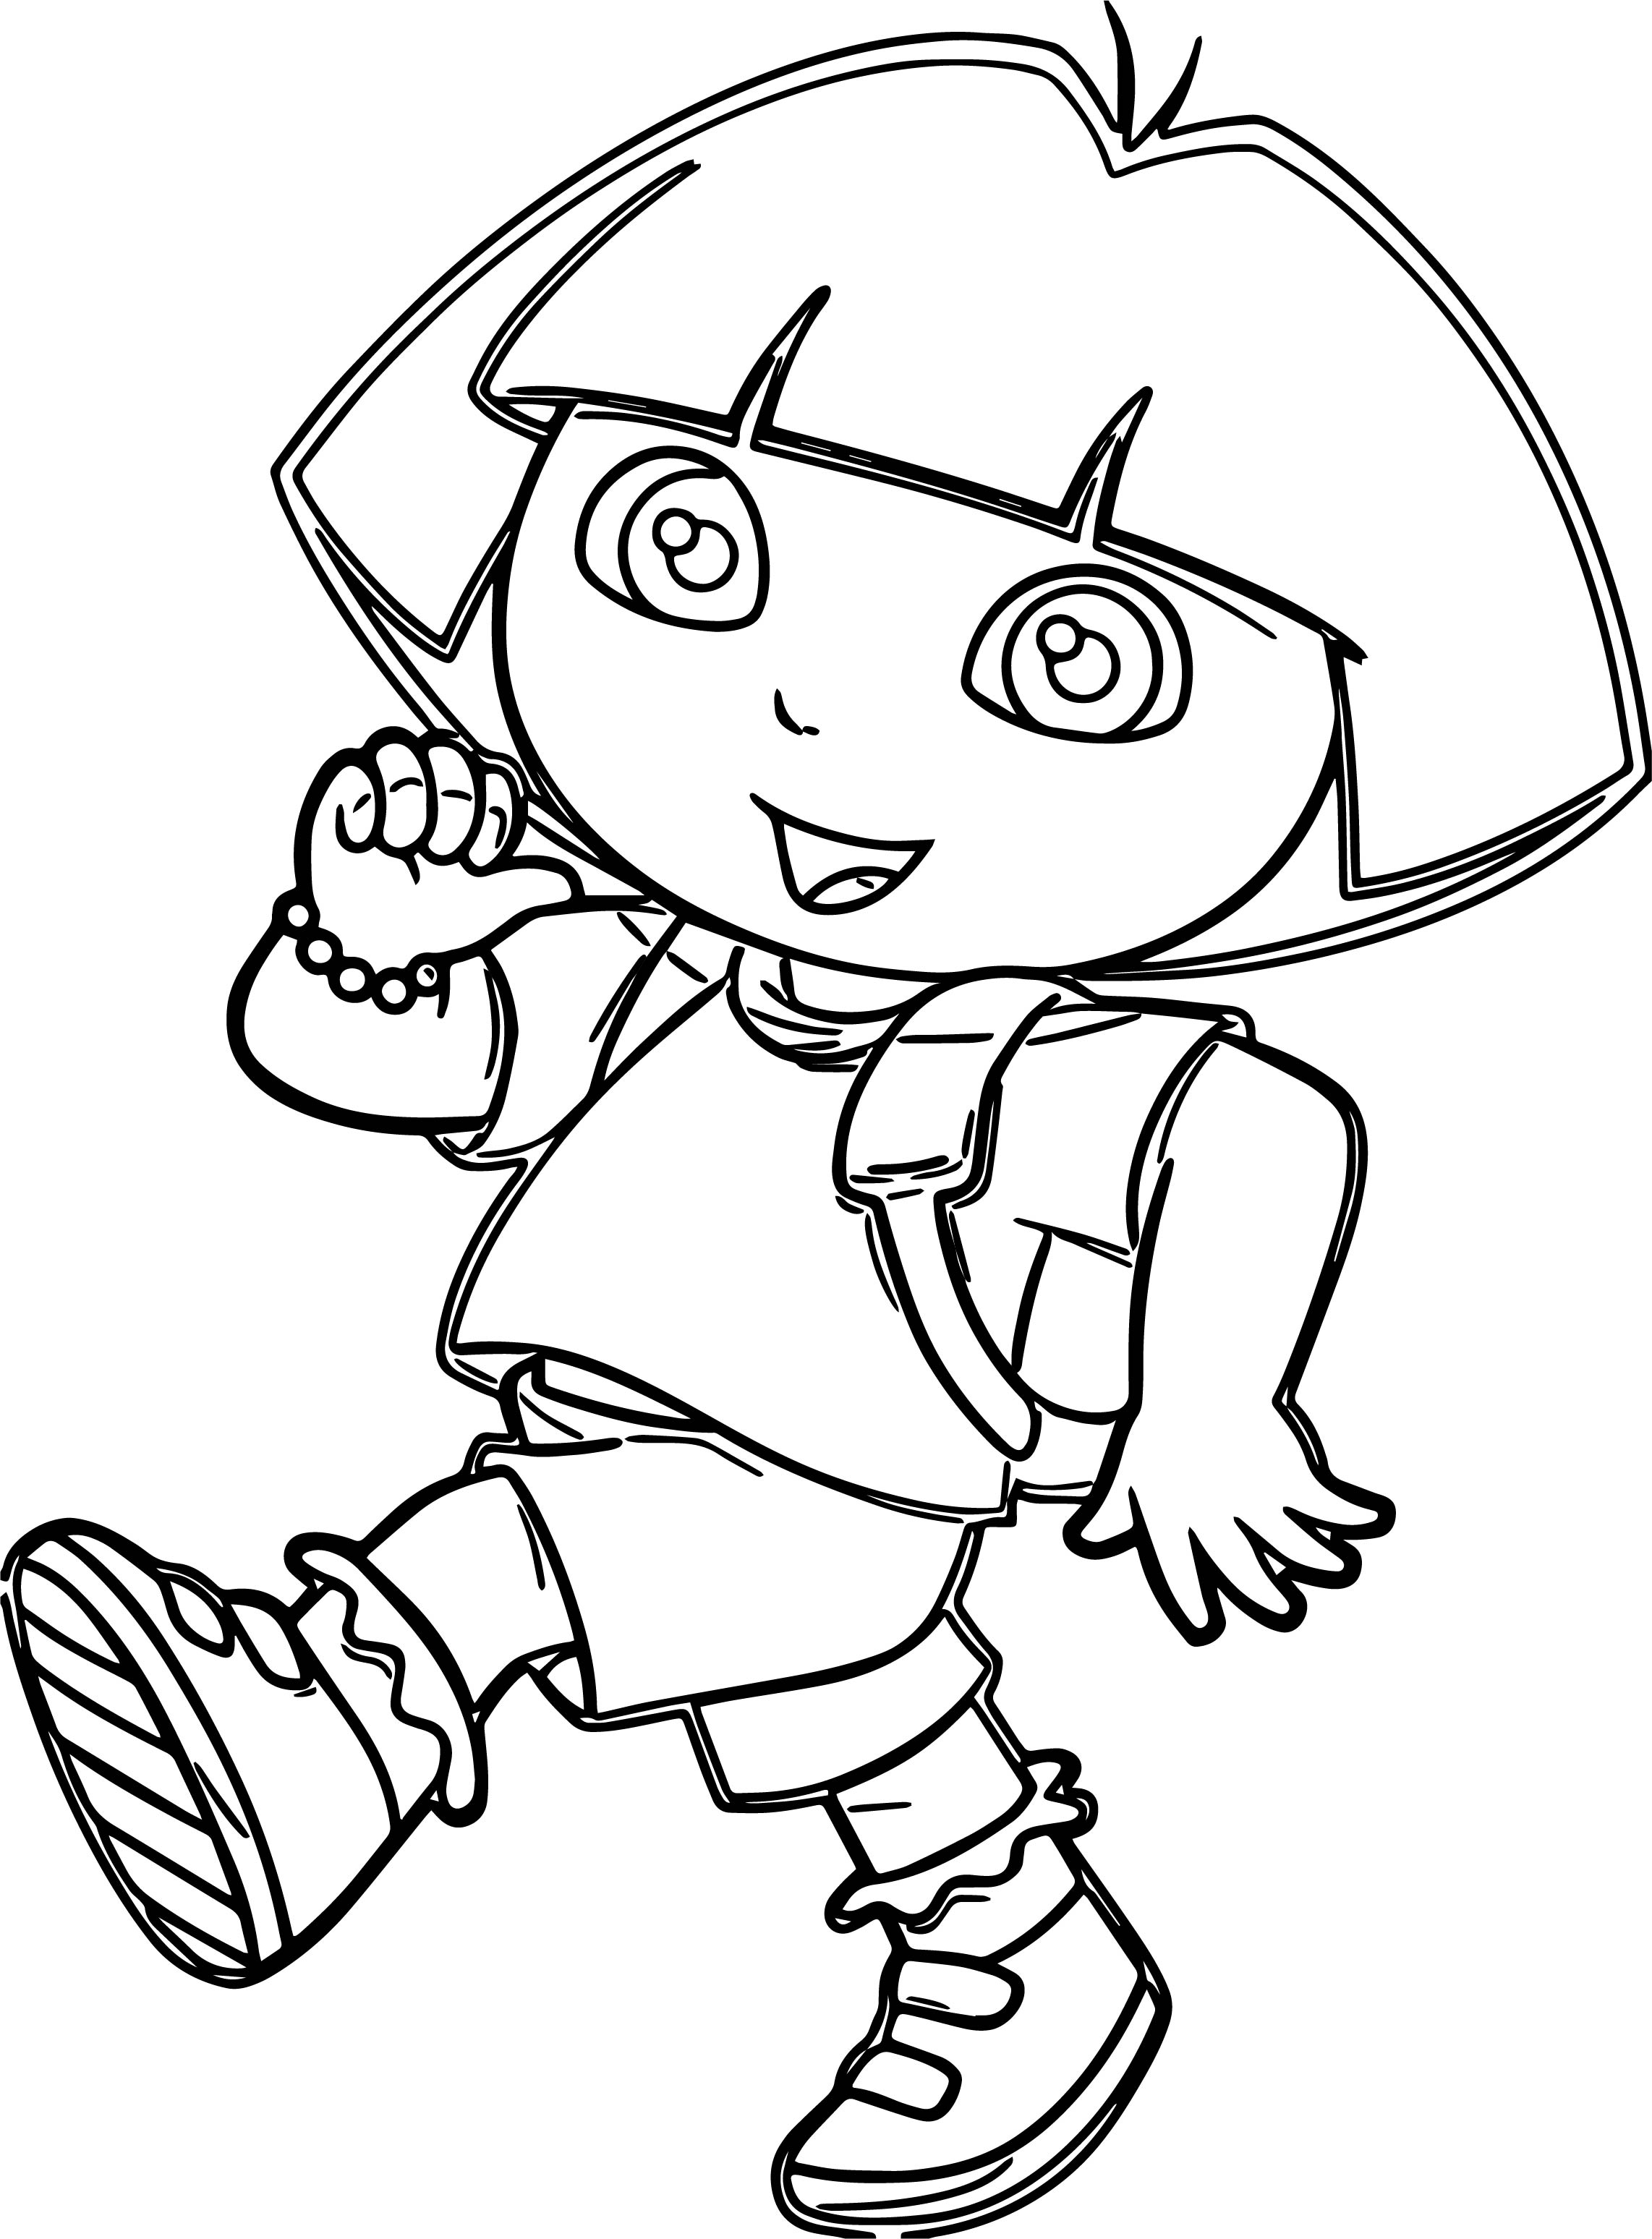 Dora Marquez Walking Cartoon Coloring Page